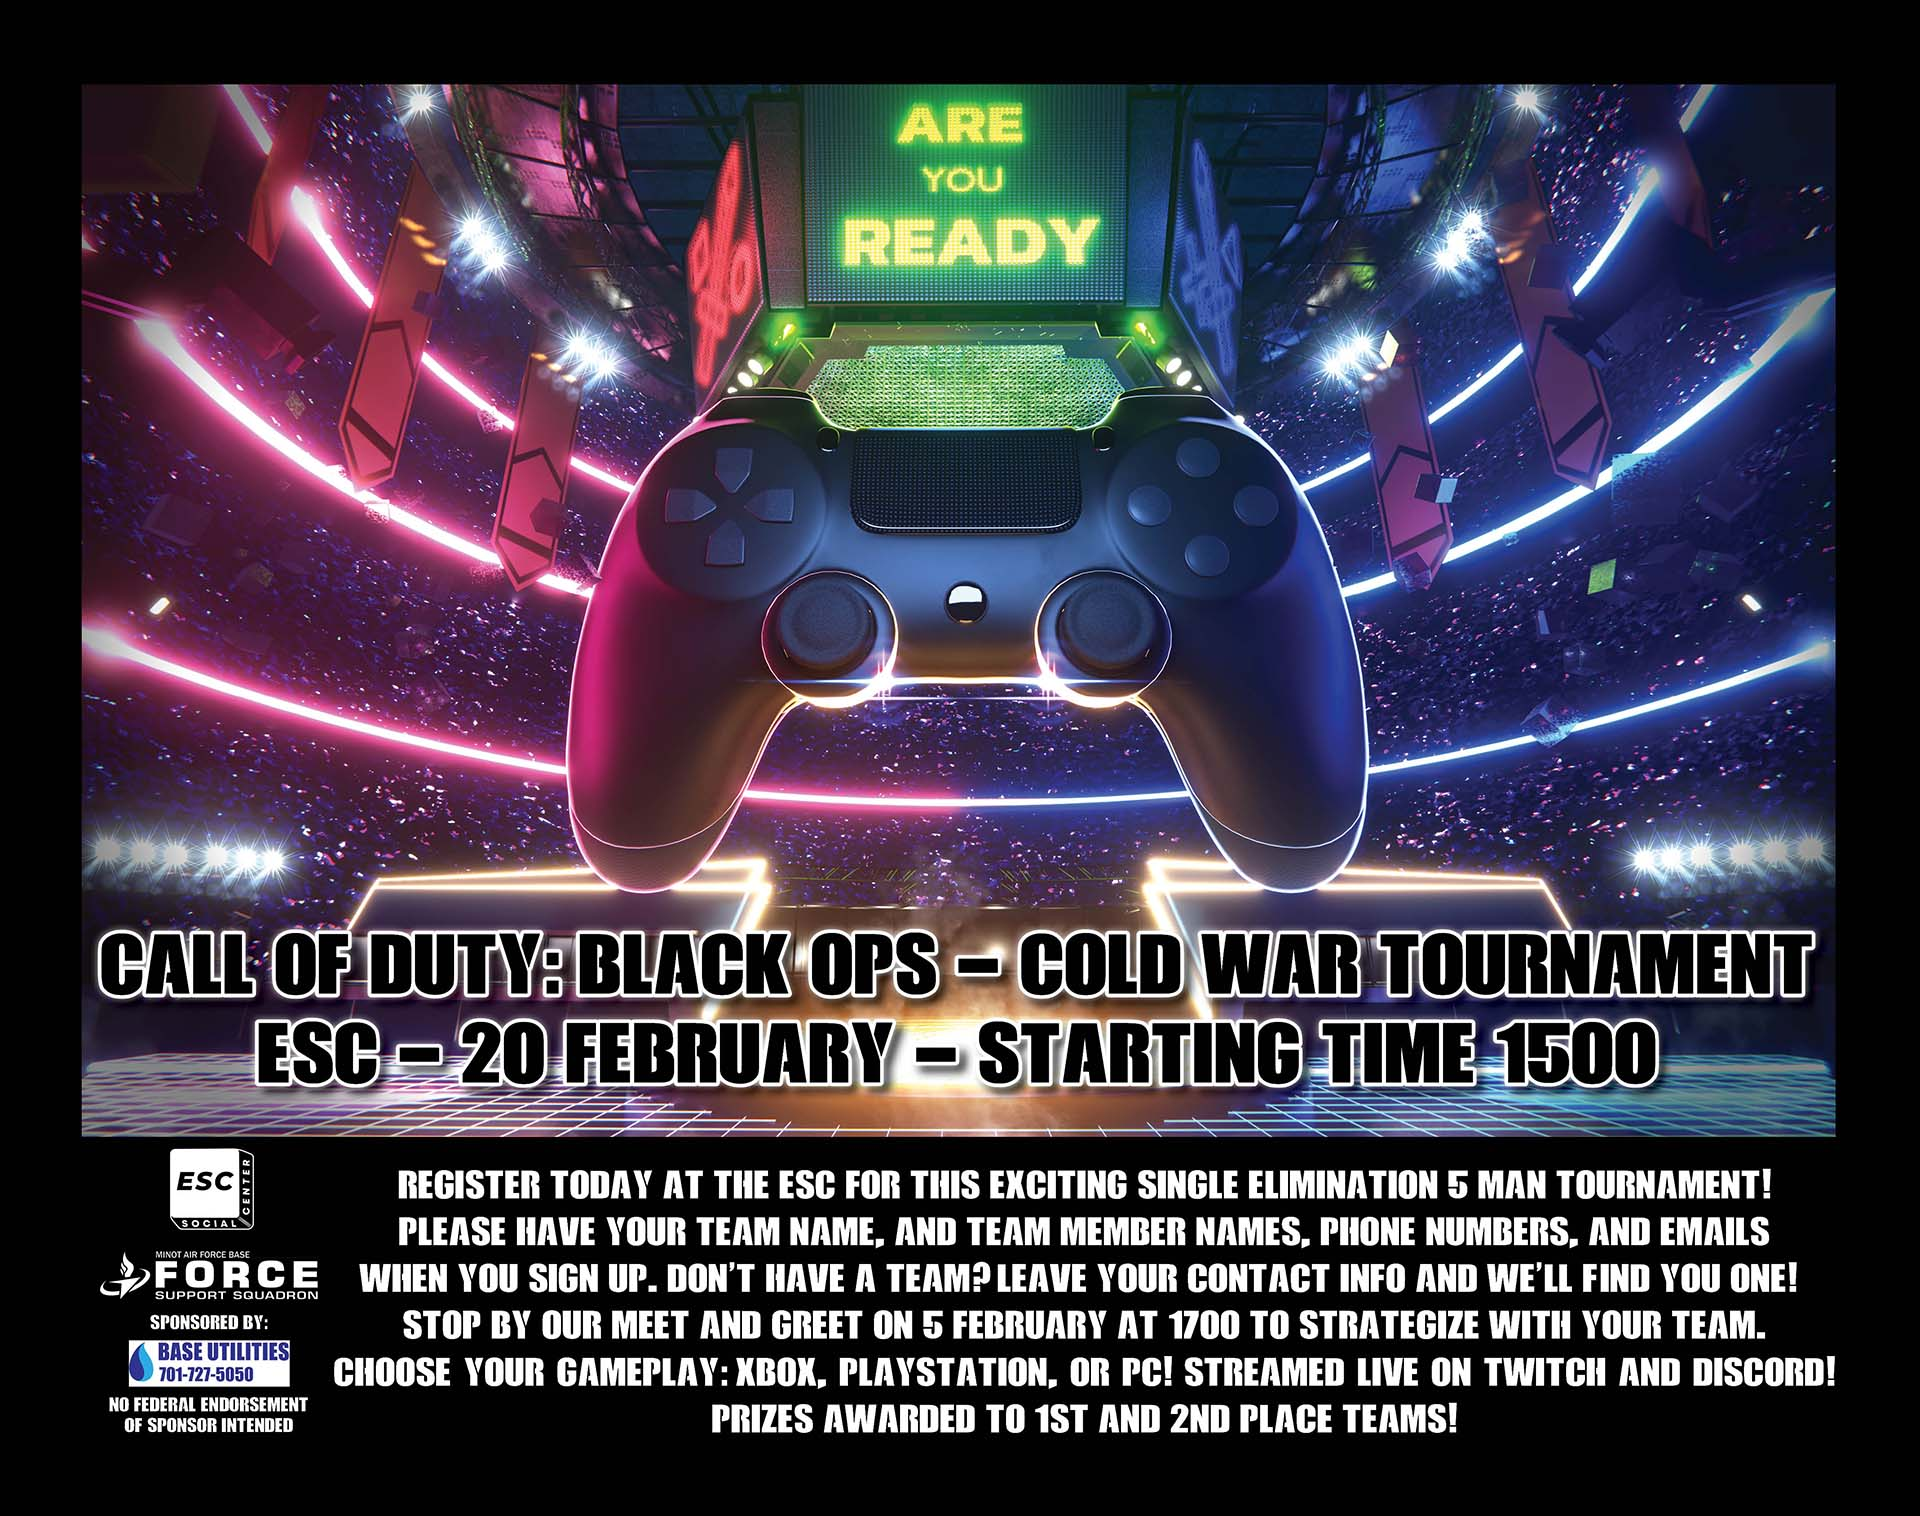 Call of Duty: Black Ops - Cold War Tournament